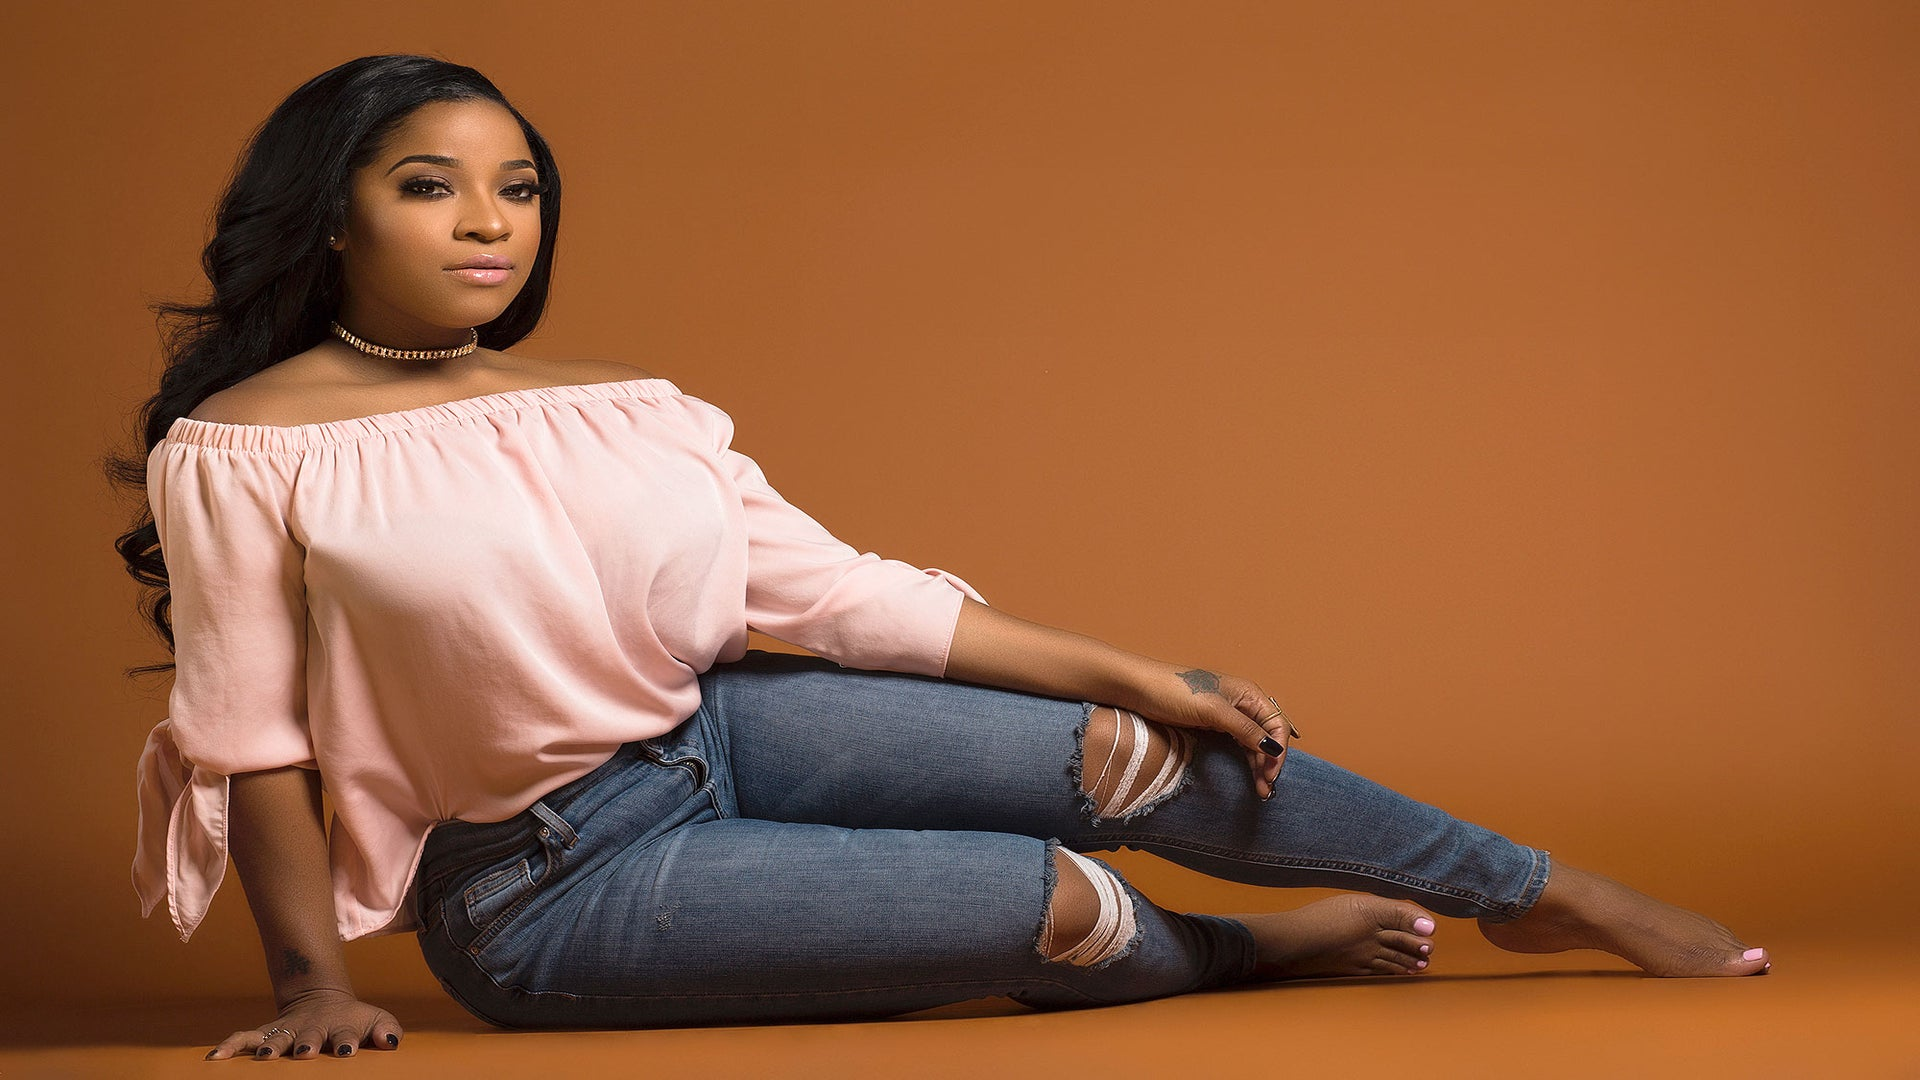 Reality Star Toya Wright Says Diet and Exercise Have Helped Her Deal with Fibroid Pain